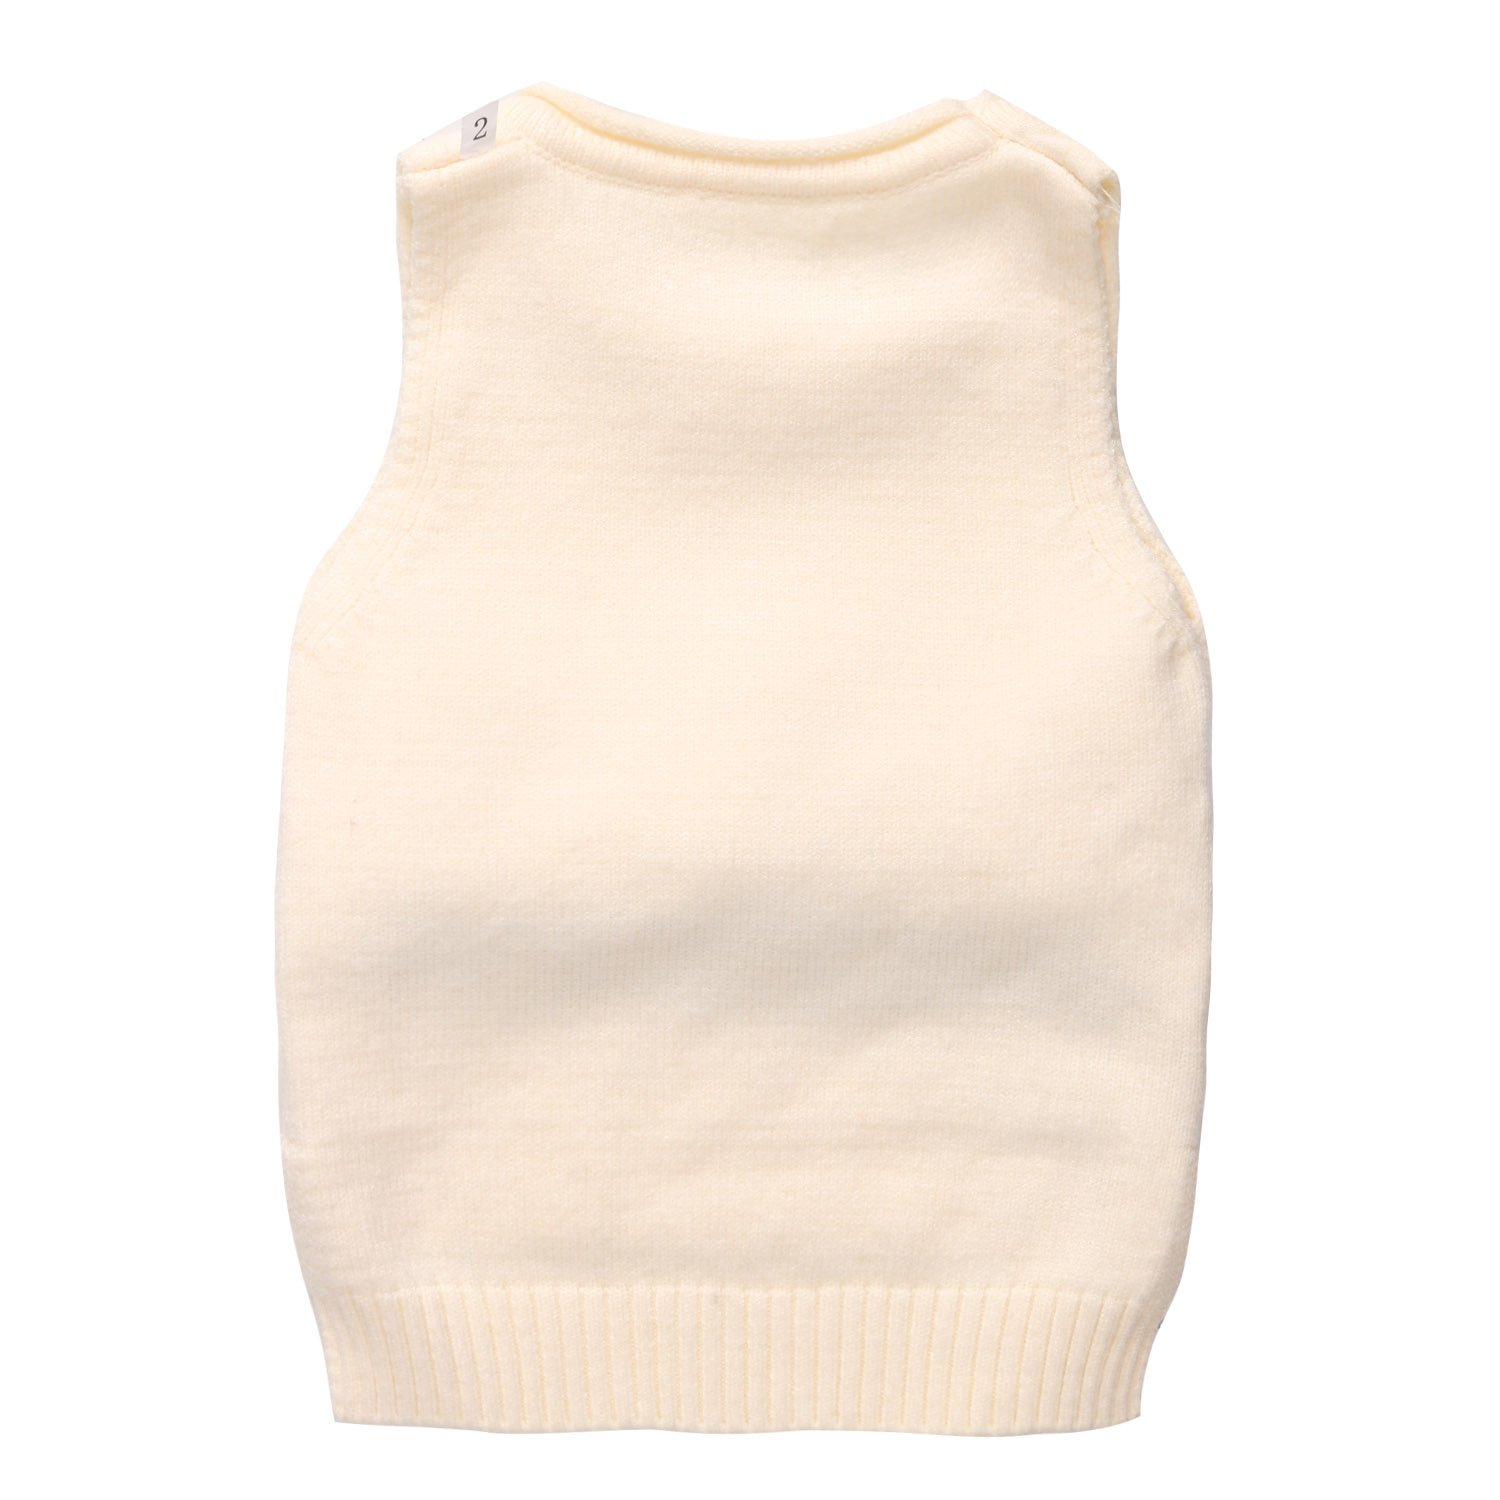 Coodebear Little Baby Girls Cashmere Caps Round Collar Sweater Vests